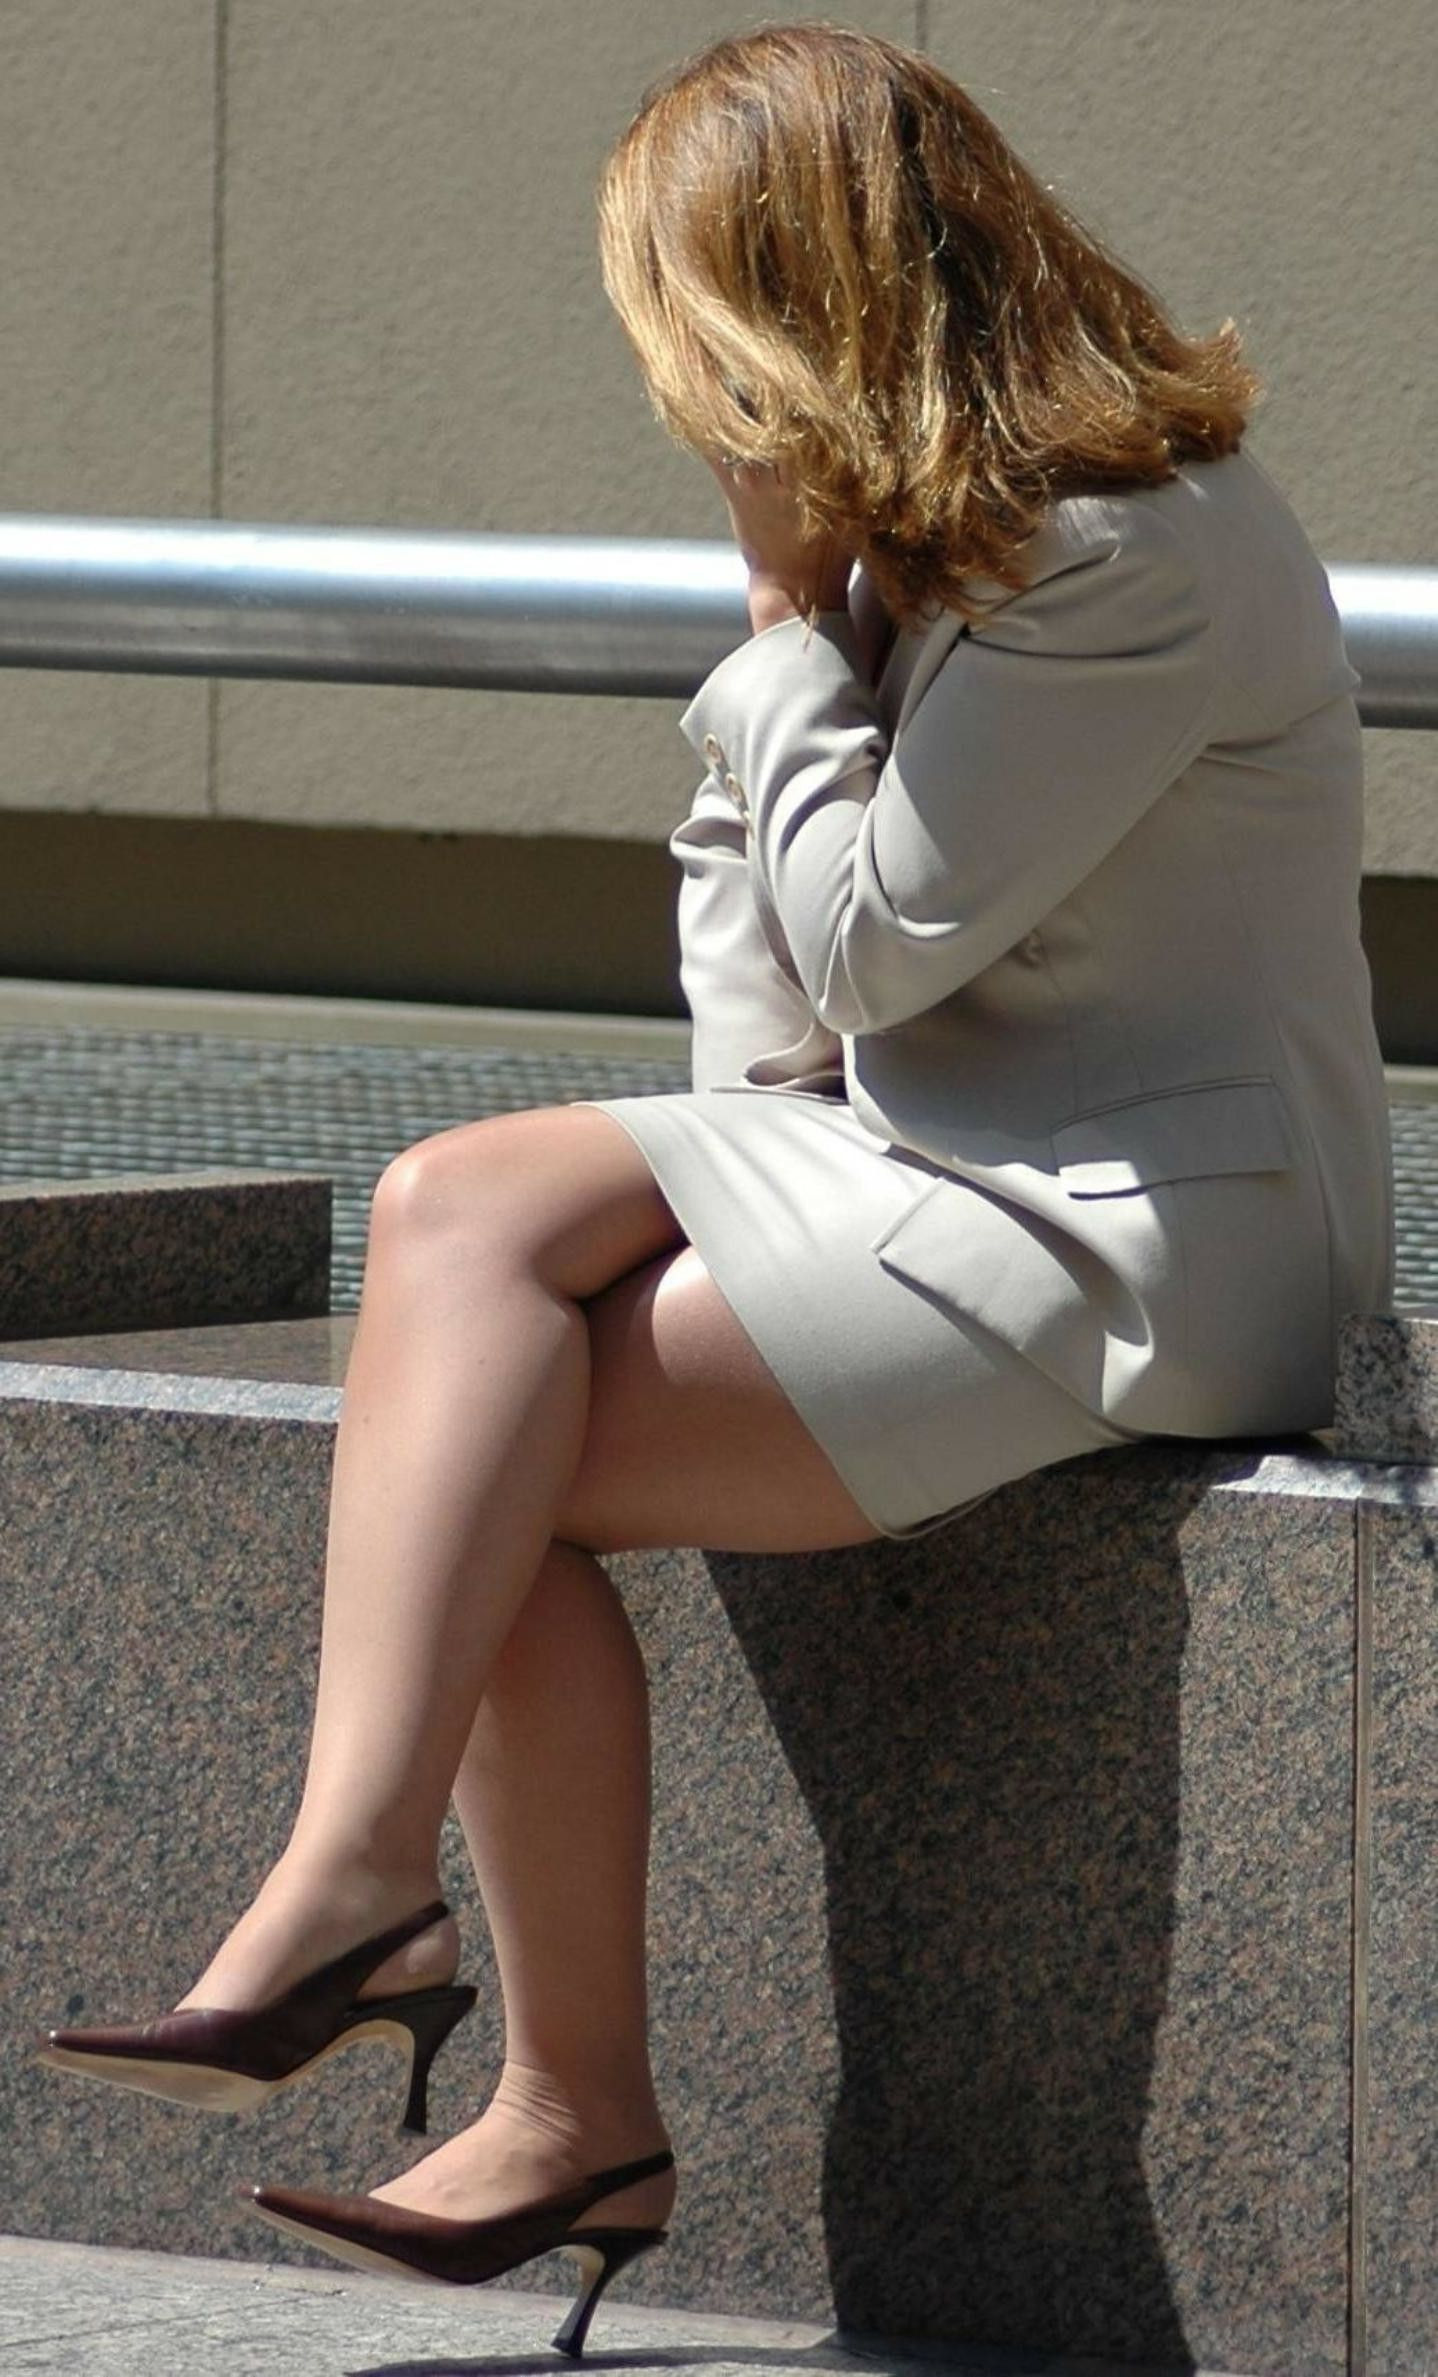 Candid girls wearing pantyhose